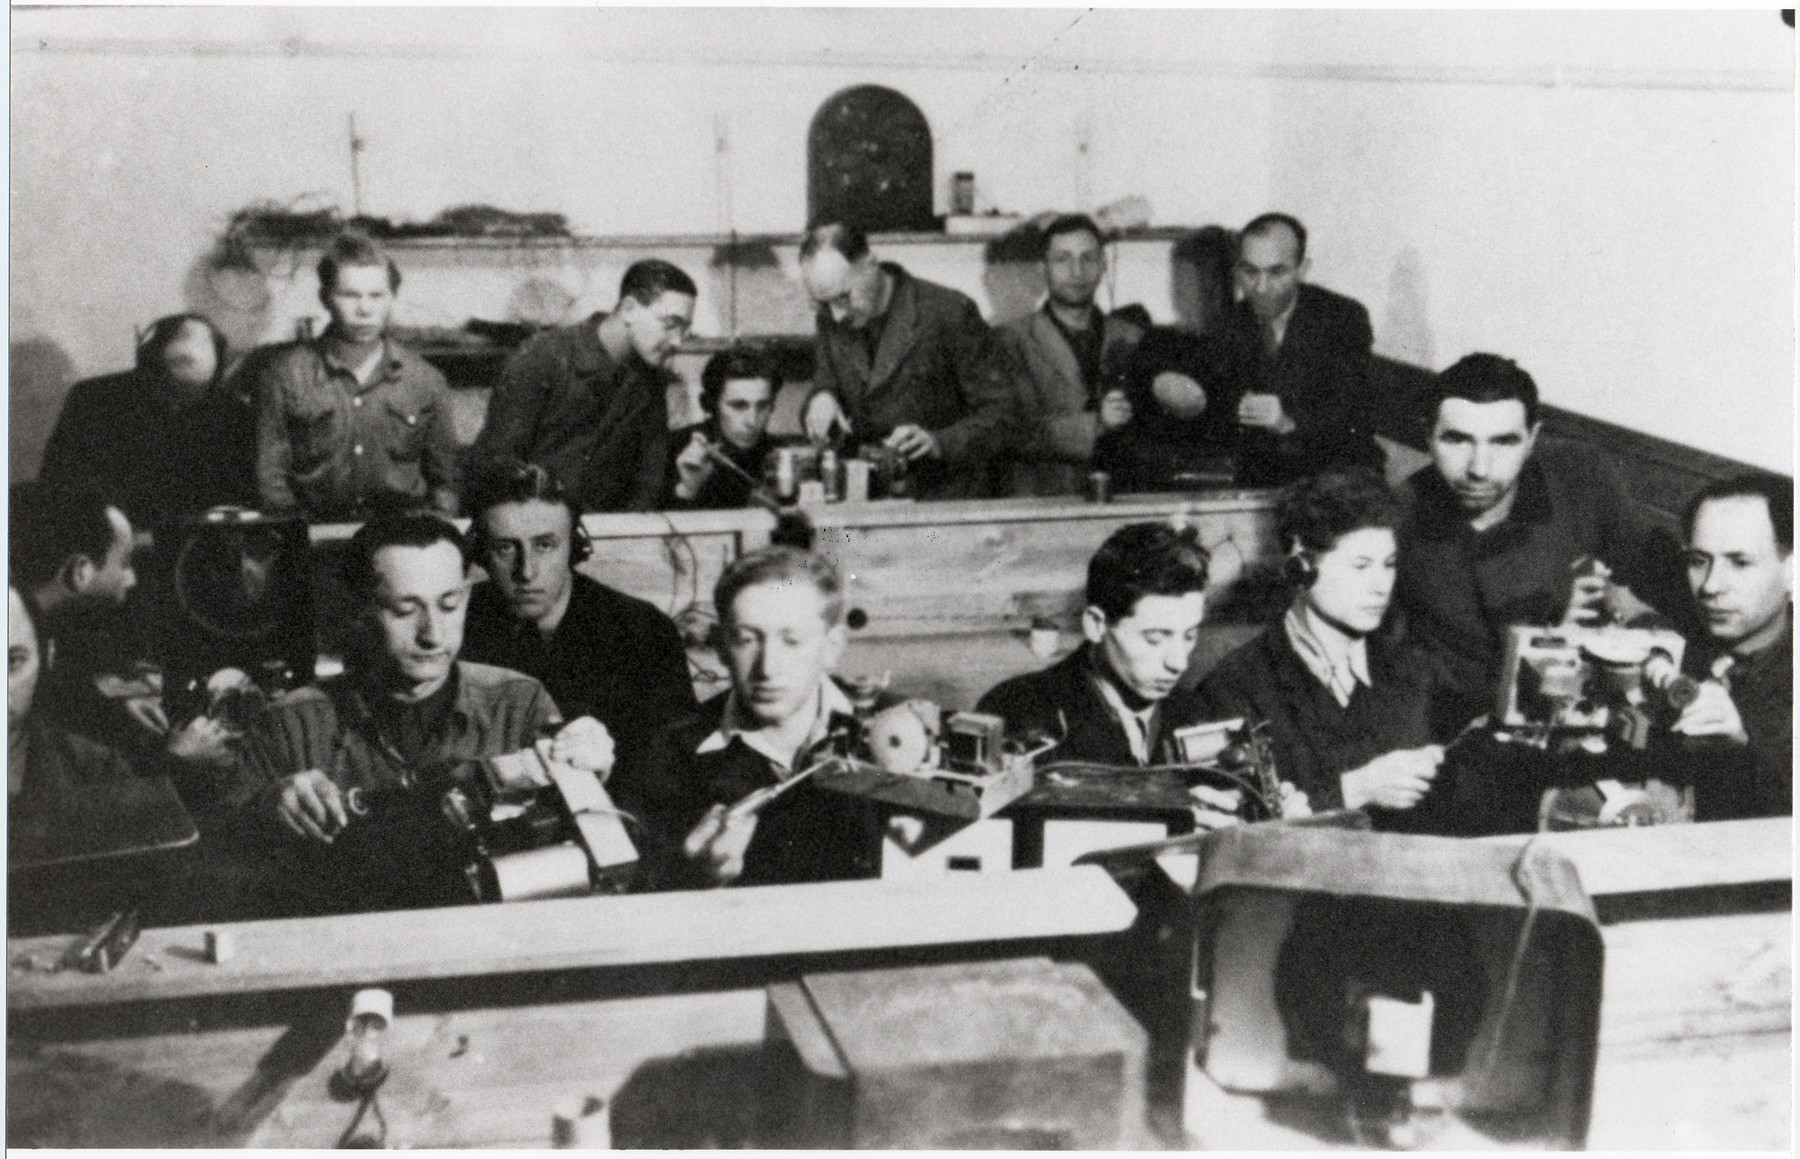 Jewish displaced persons learn how to fix machinery in an ORT vocational school in Landsberg.